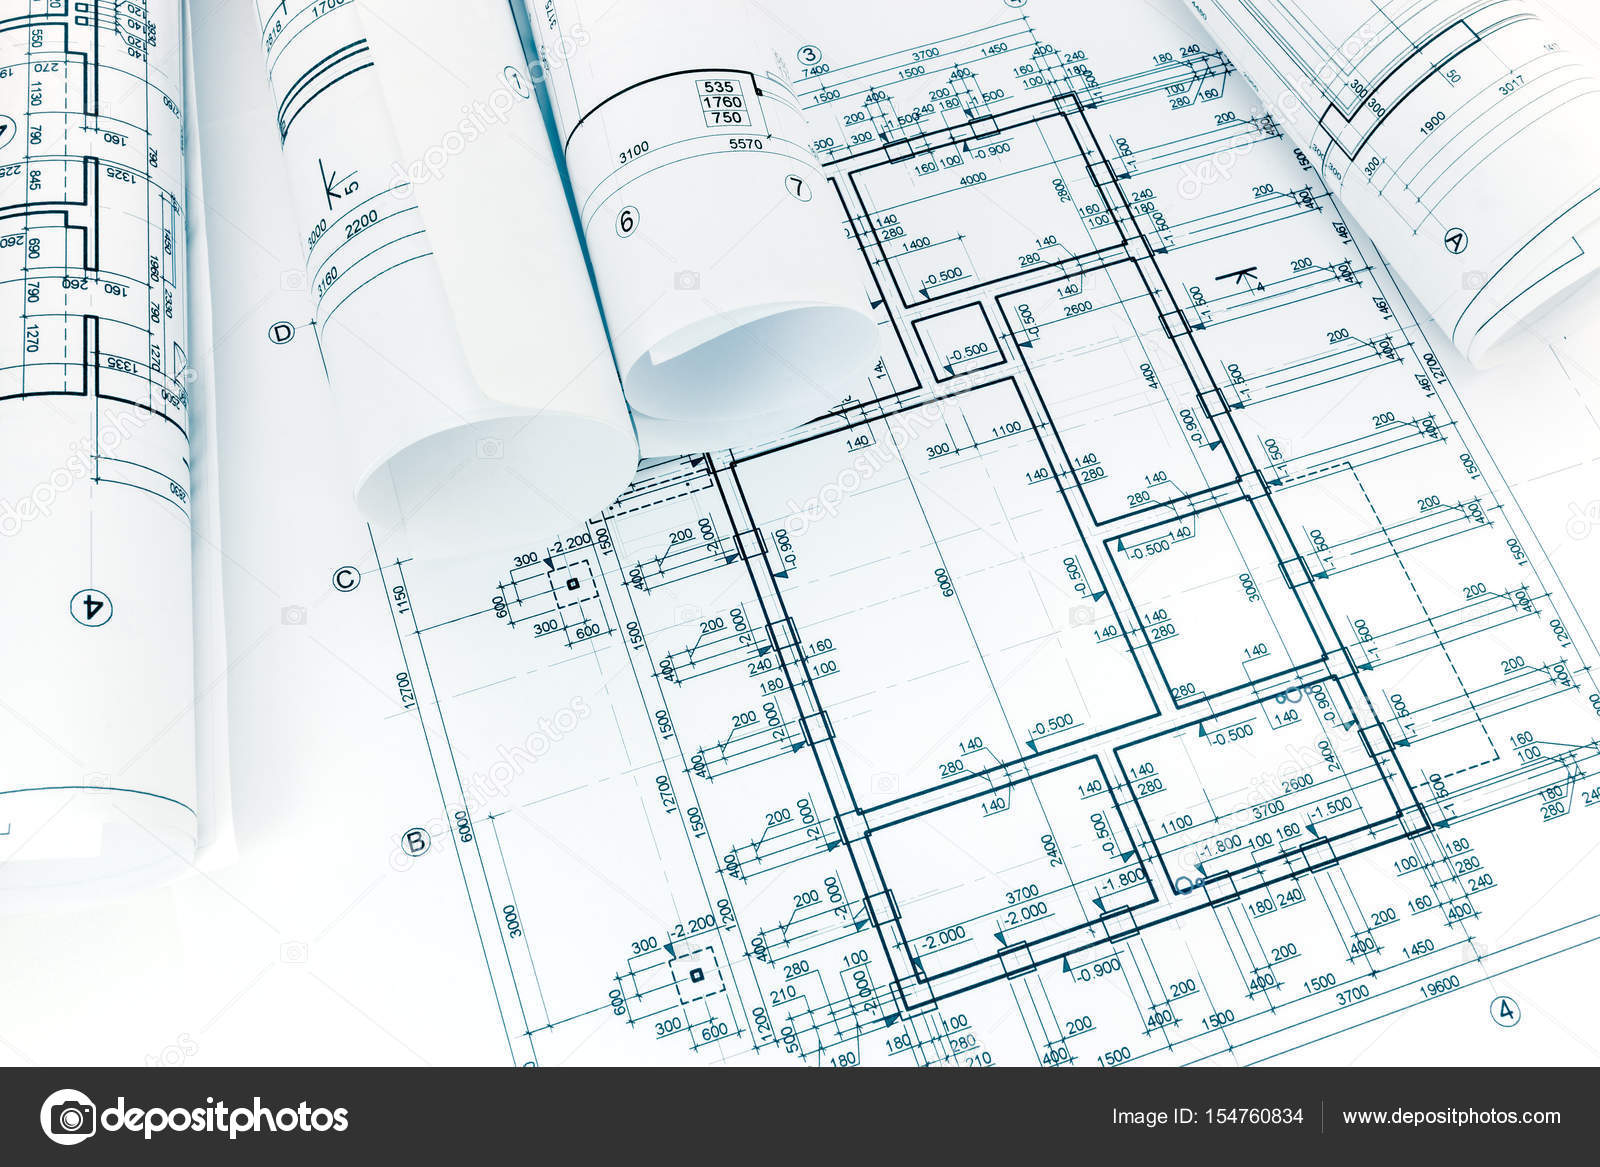 Rolled building plans on architectural blueprint background stock rolled building plans on architectural blueprint background stock photo malvernweather Gallery